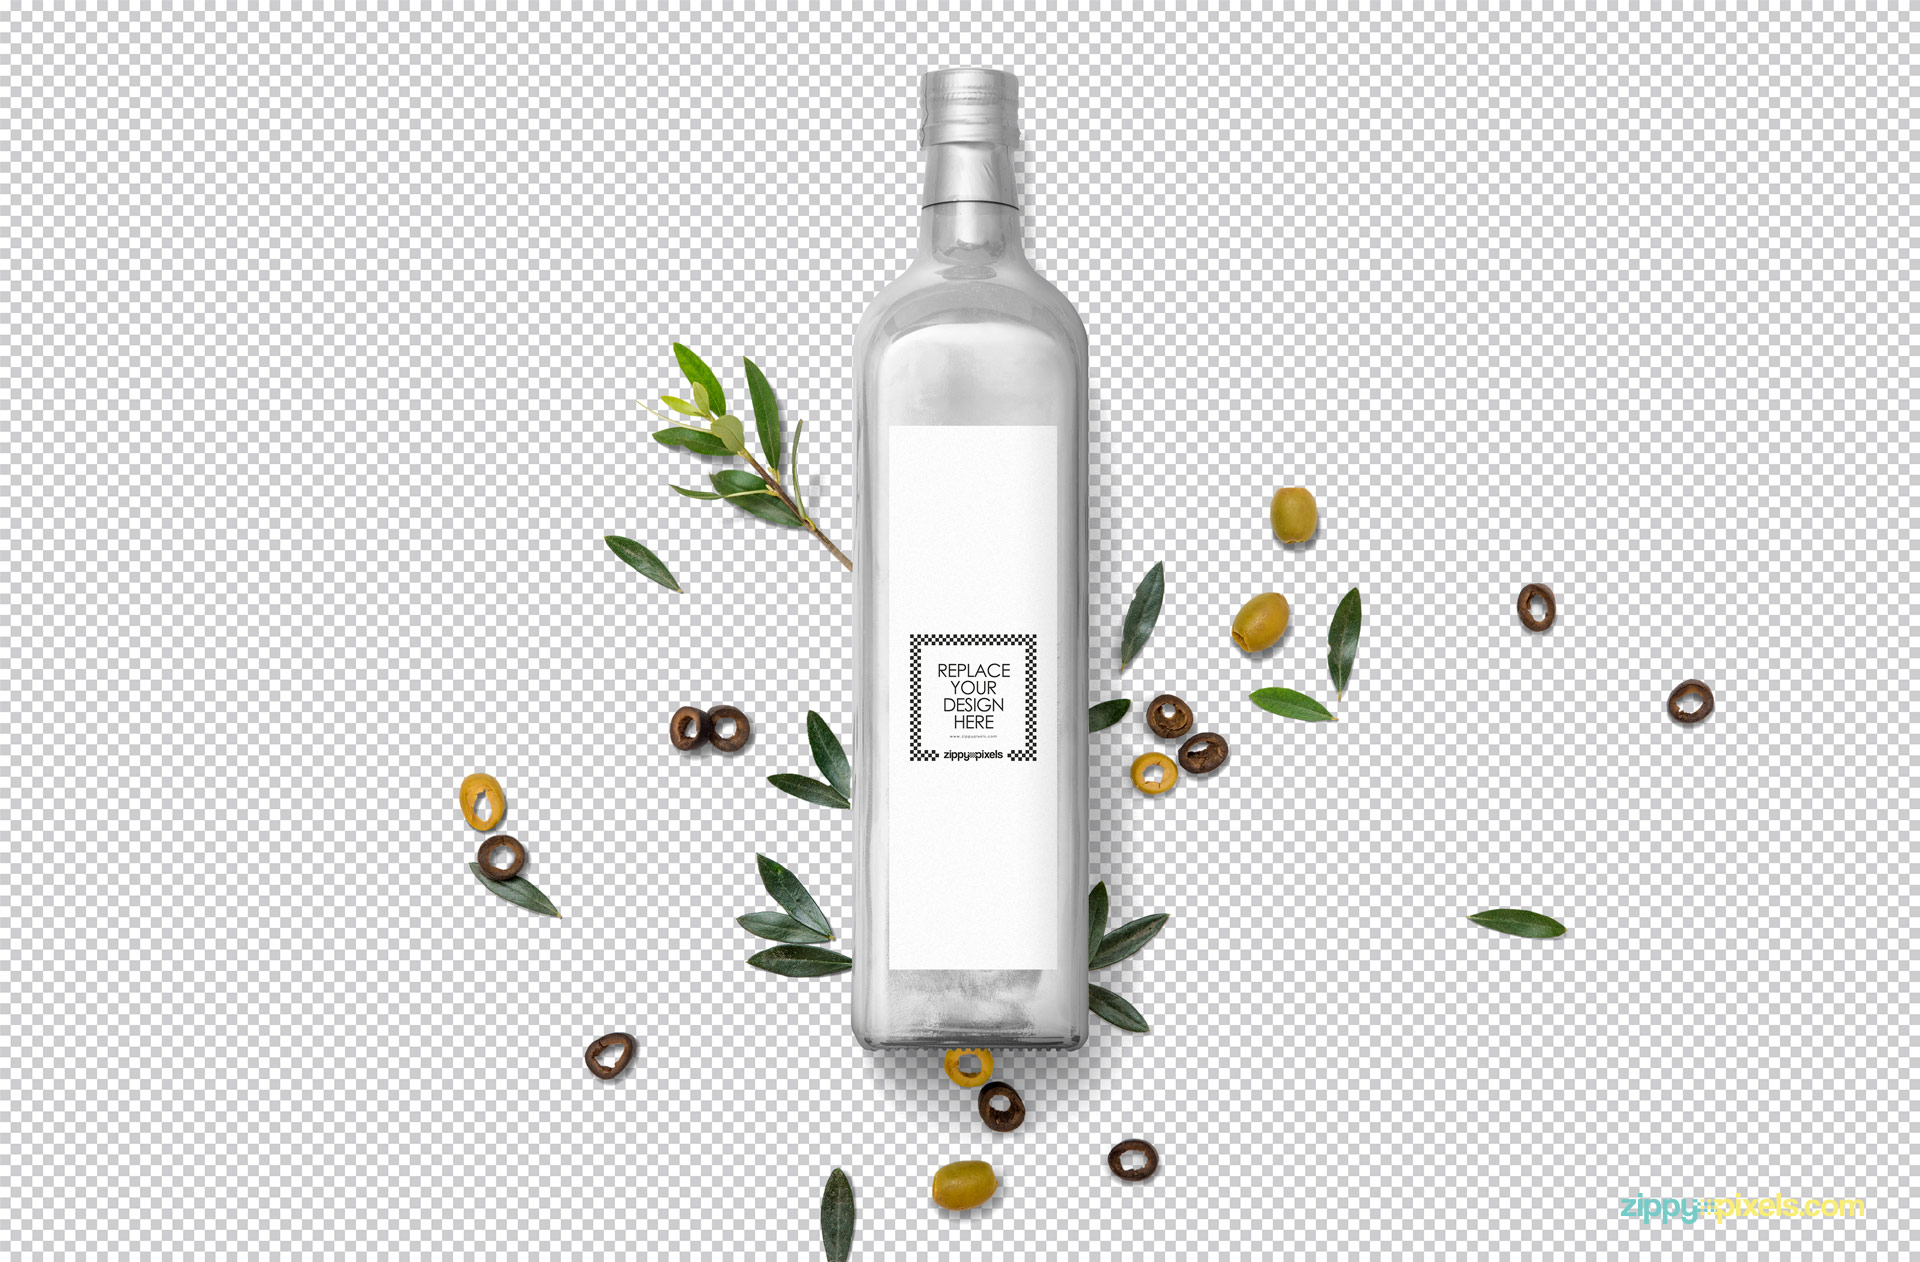 Use Photoshop to edit the PSD of glass bottle mockup.